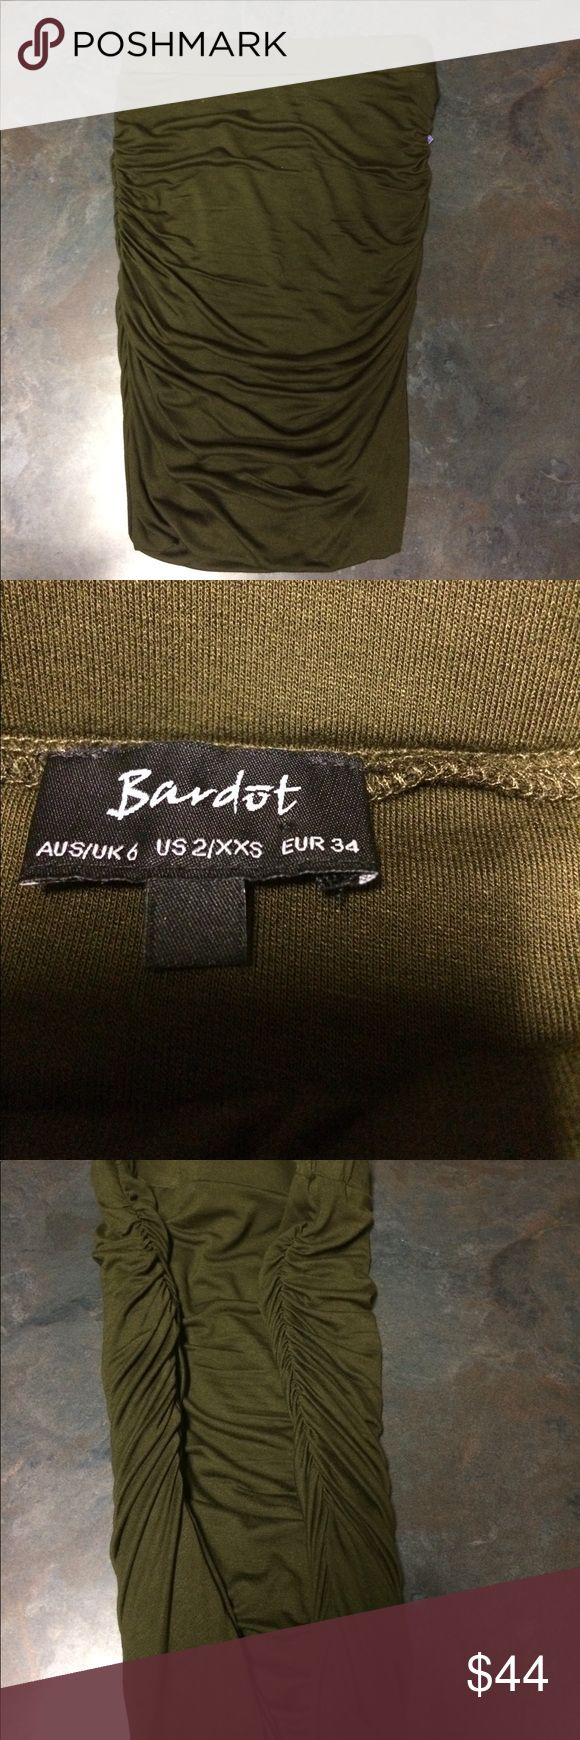 NWT Olive Green Ruched Mini Skirt Super soft and comfortable. Olive green colored mini skirt with side ruching. Elastic waistband. Actually could be worn as a tube top if desired. Bardot Skirts Mini